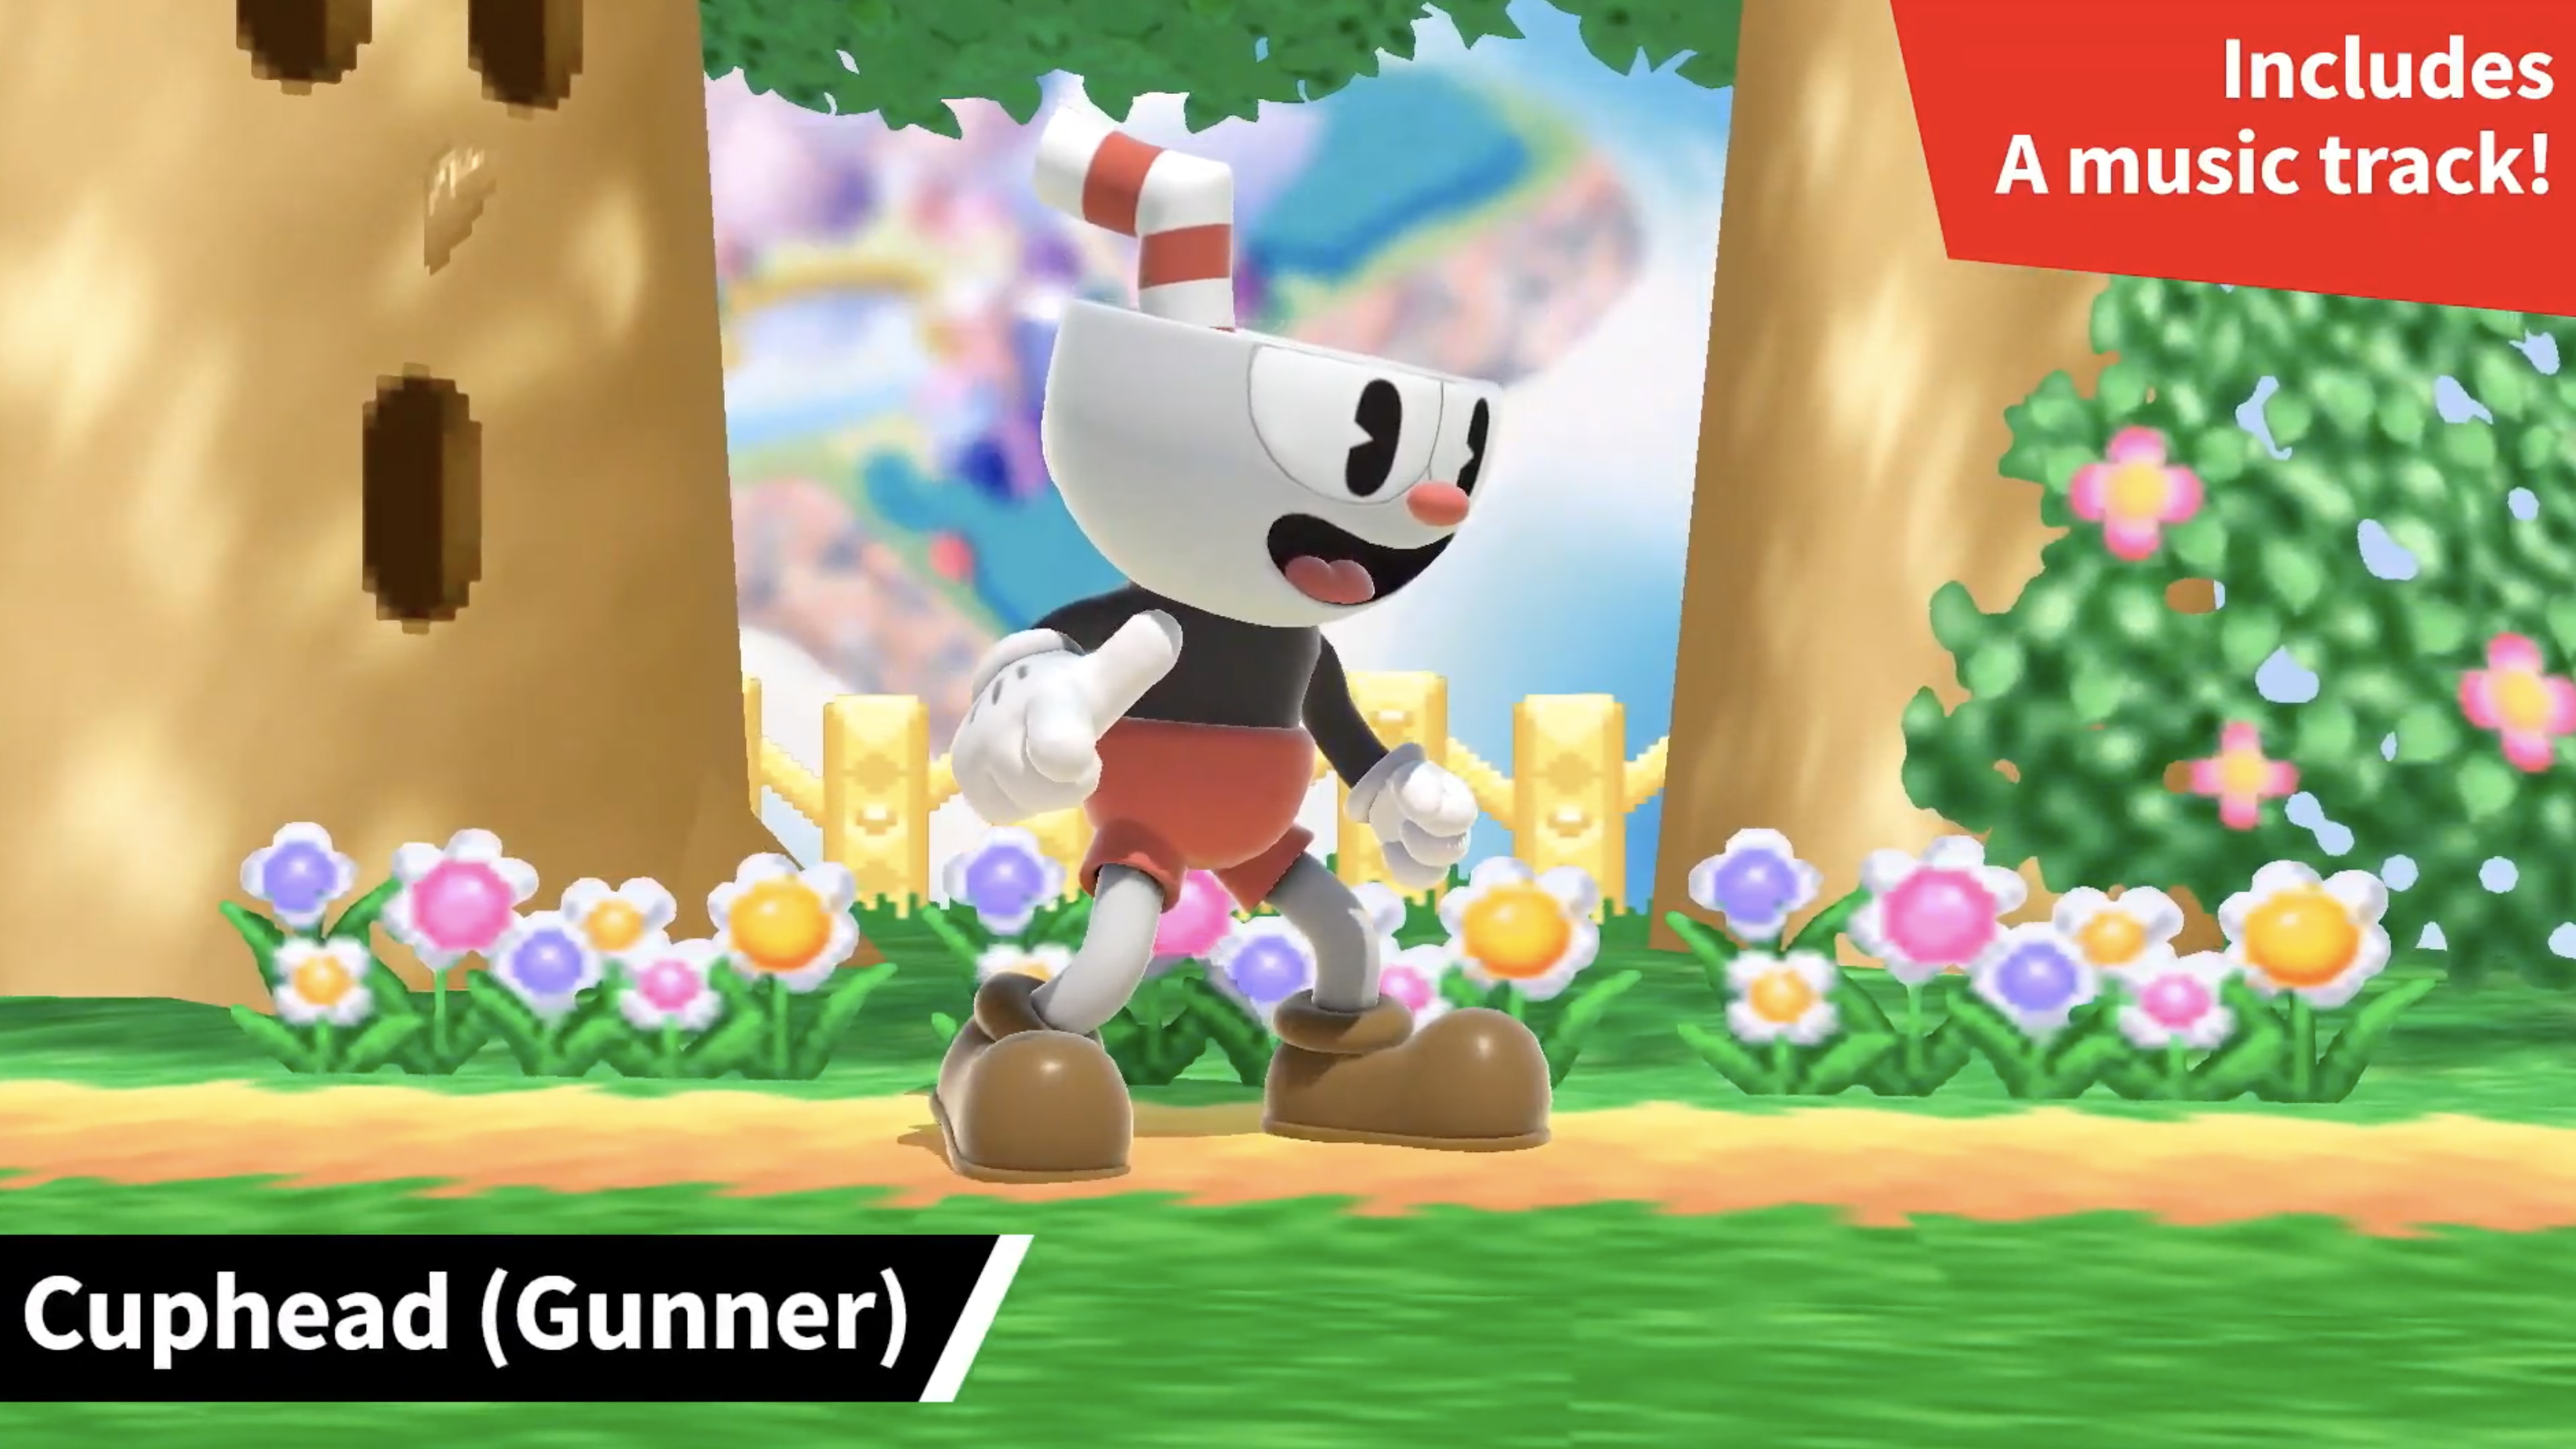 Cuphead is wasted in Super Smash Bros Ultimate as a measly Mii Fighter